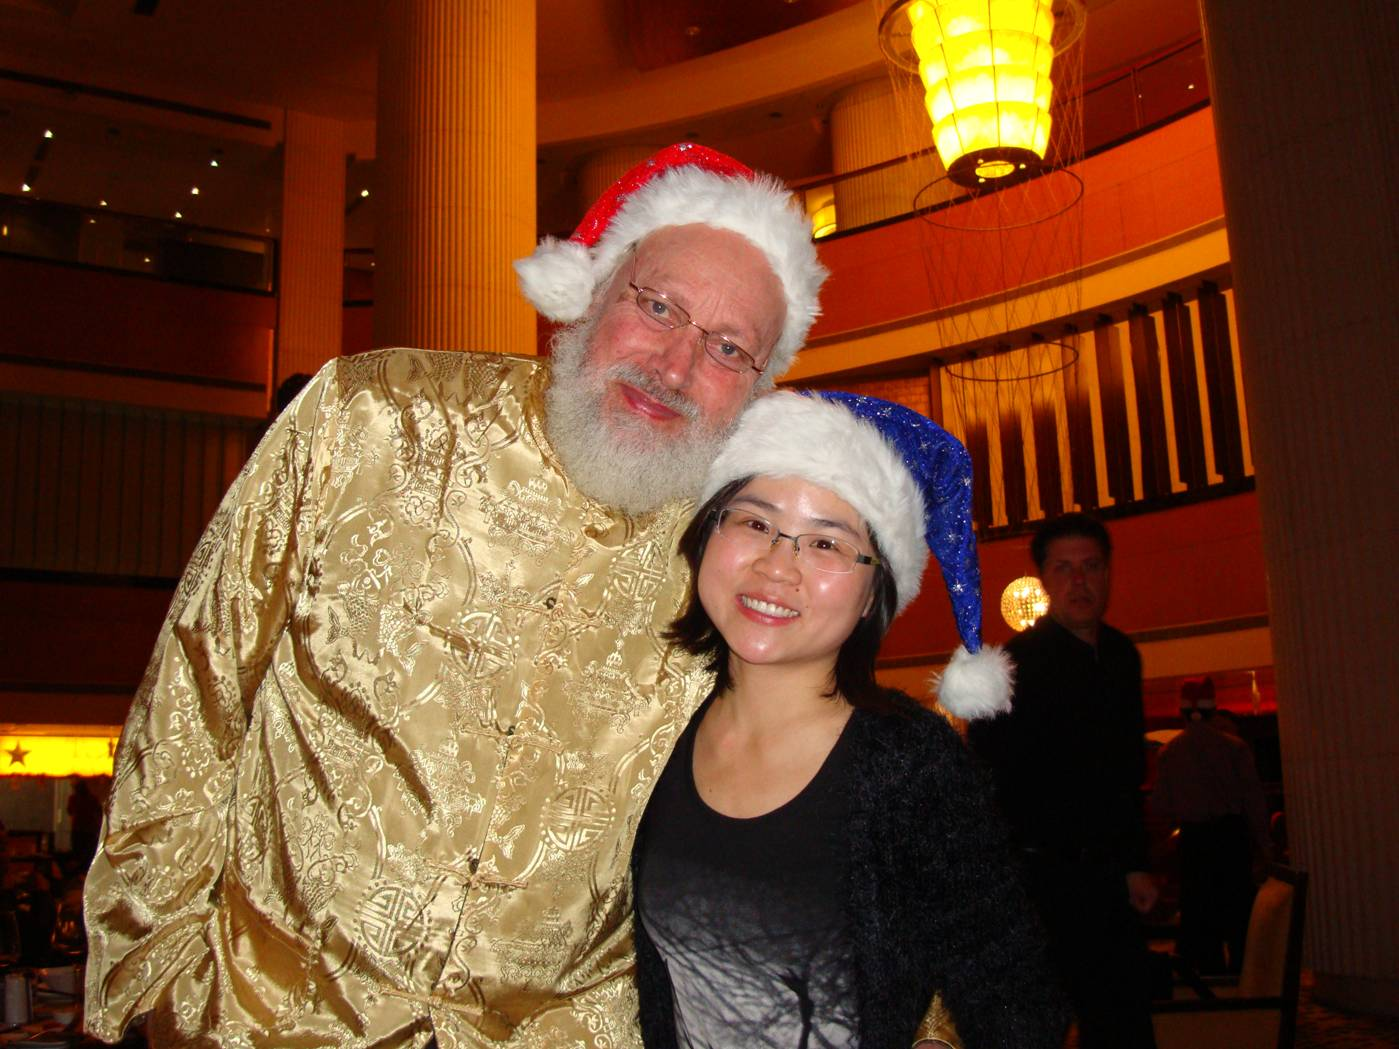 Picture:  Our former student, Lv Min, now works in Shanghai.  She could join us for the Christmas dinner.